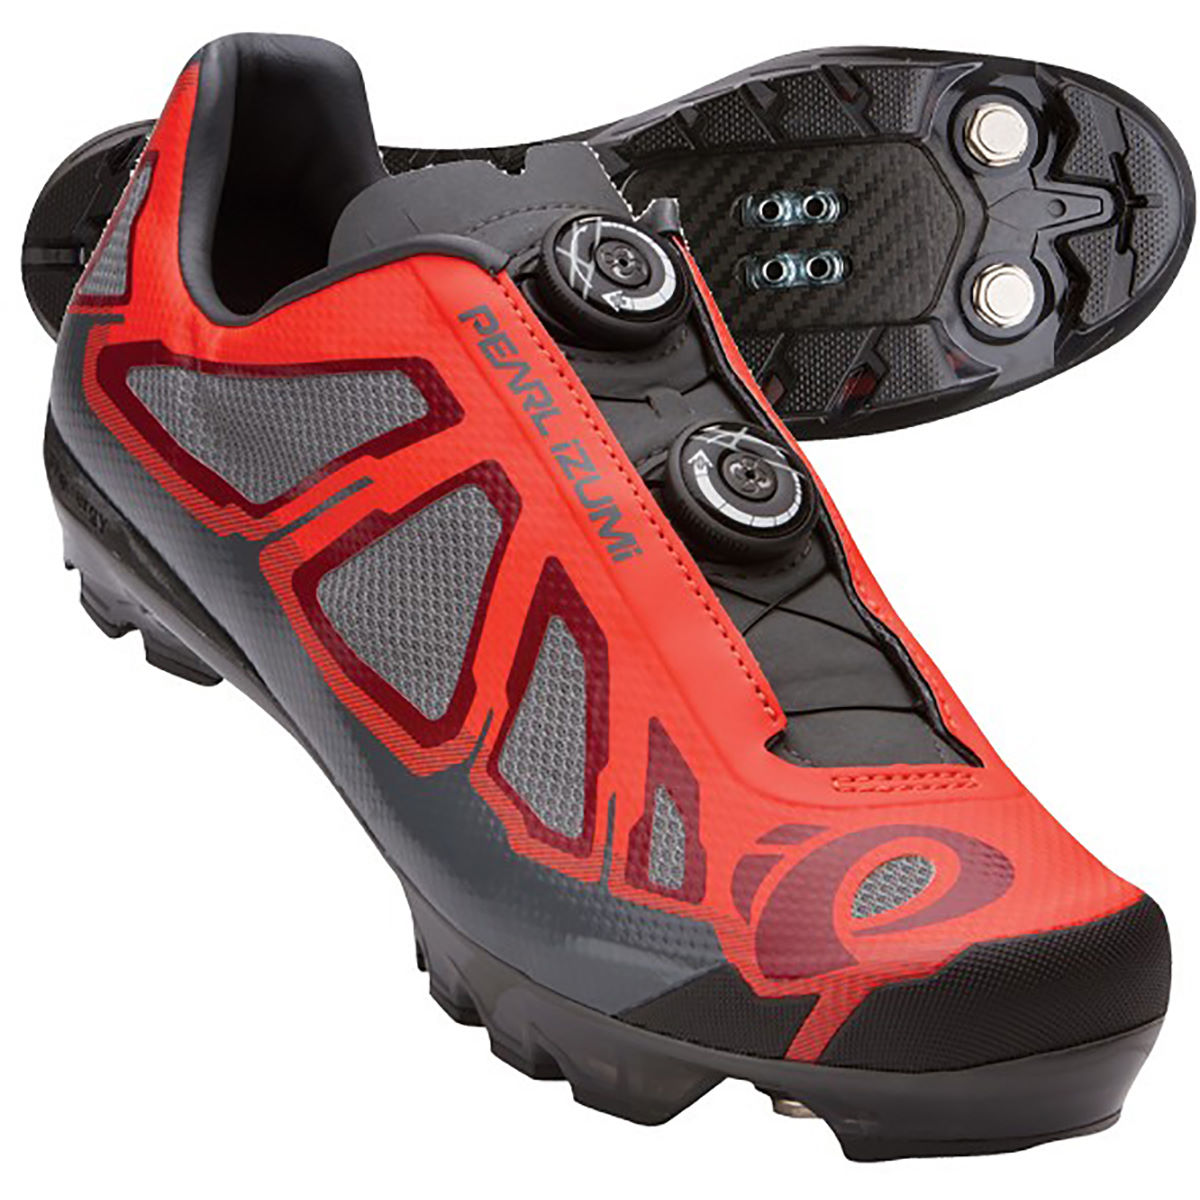 Chaussures VTT Pearl Izumi X-Project 1.0 - 43.5 Mandarin Red/Black